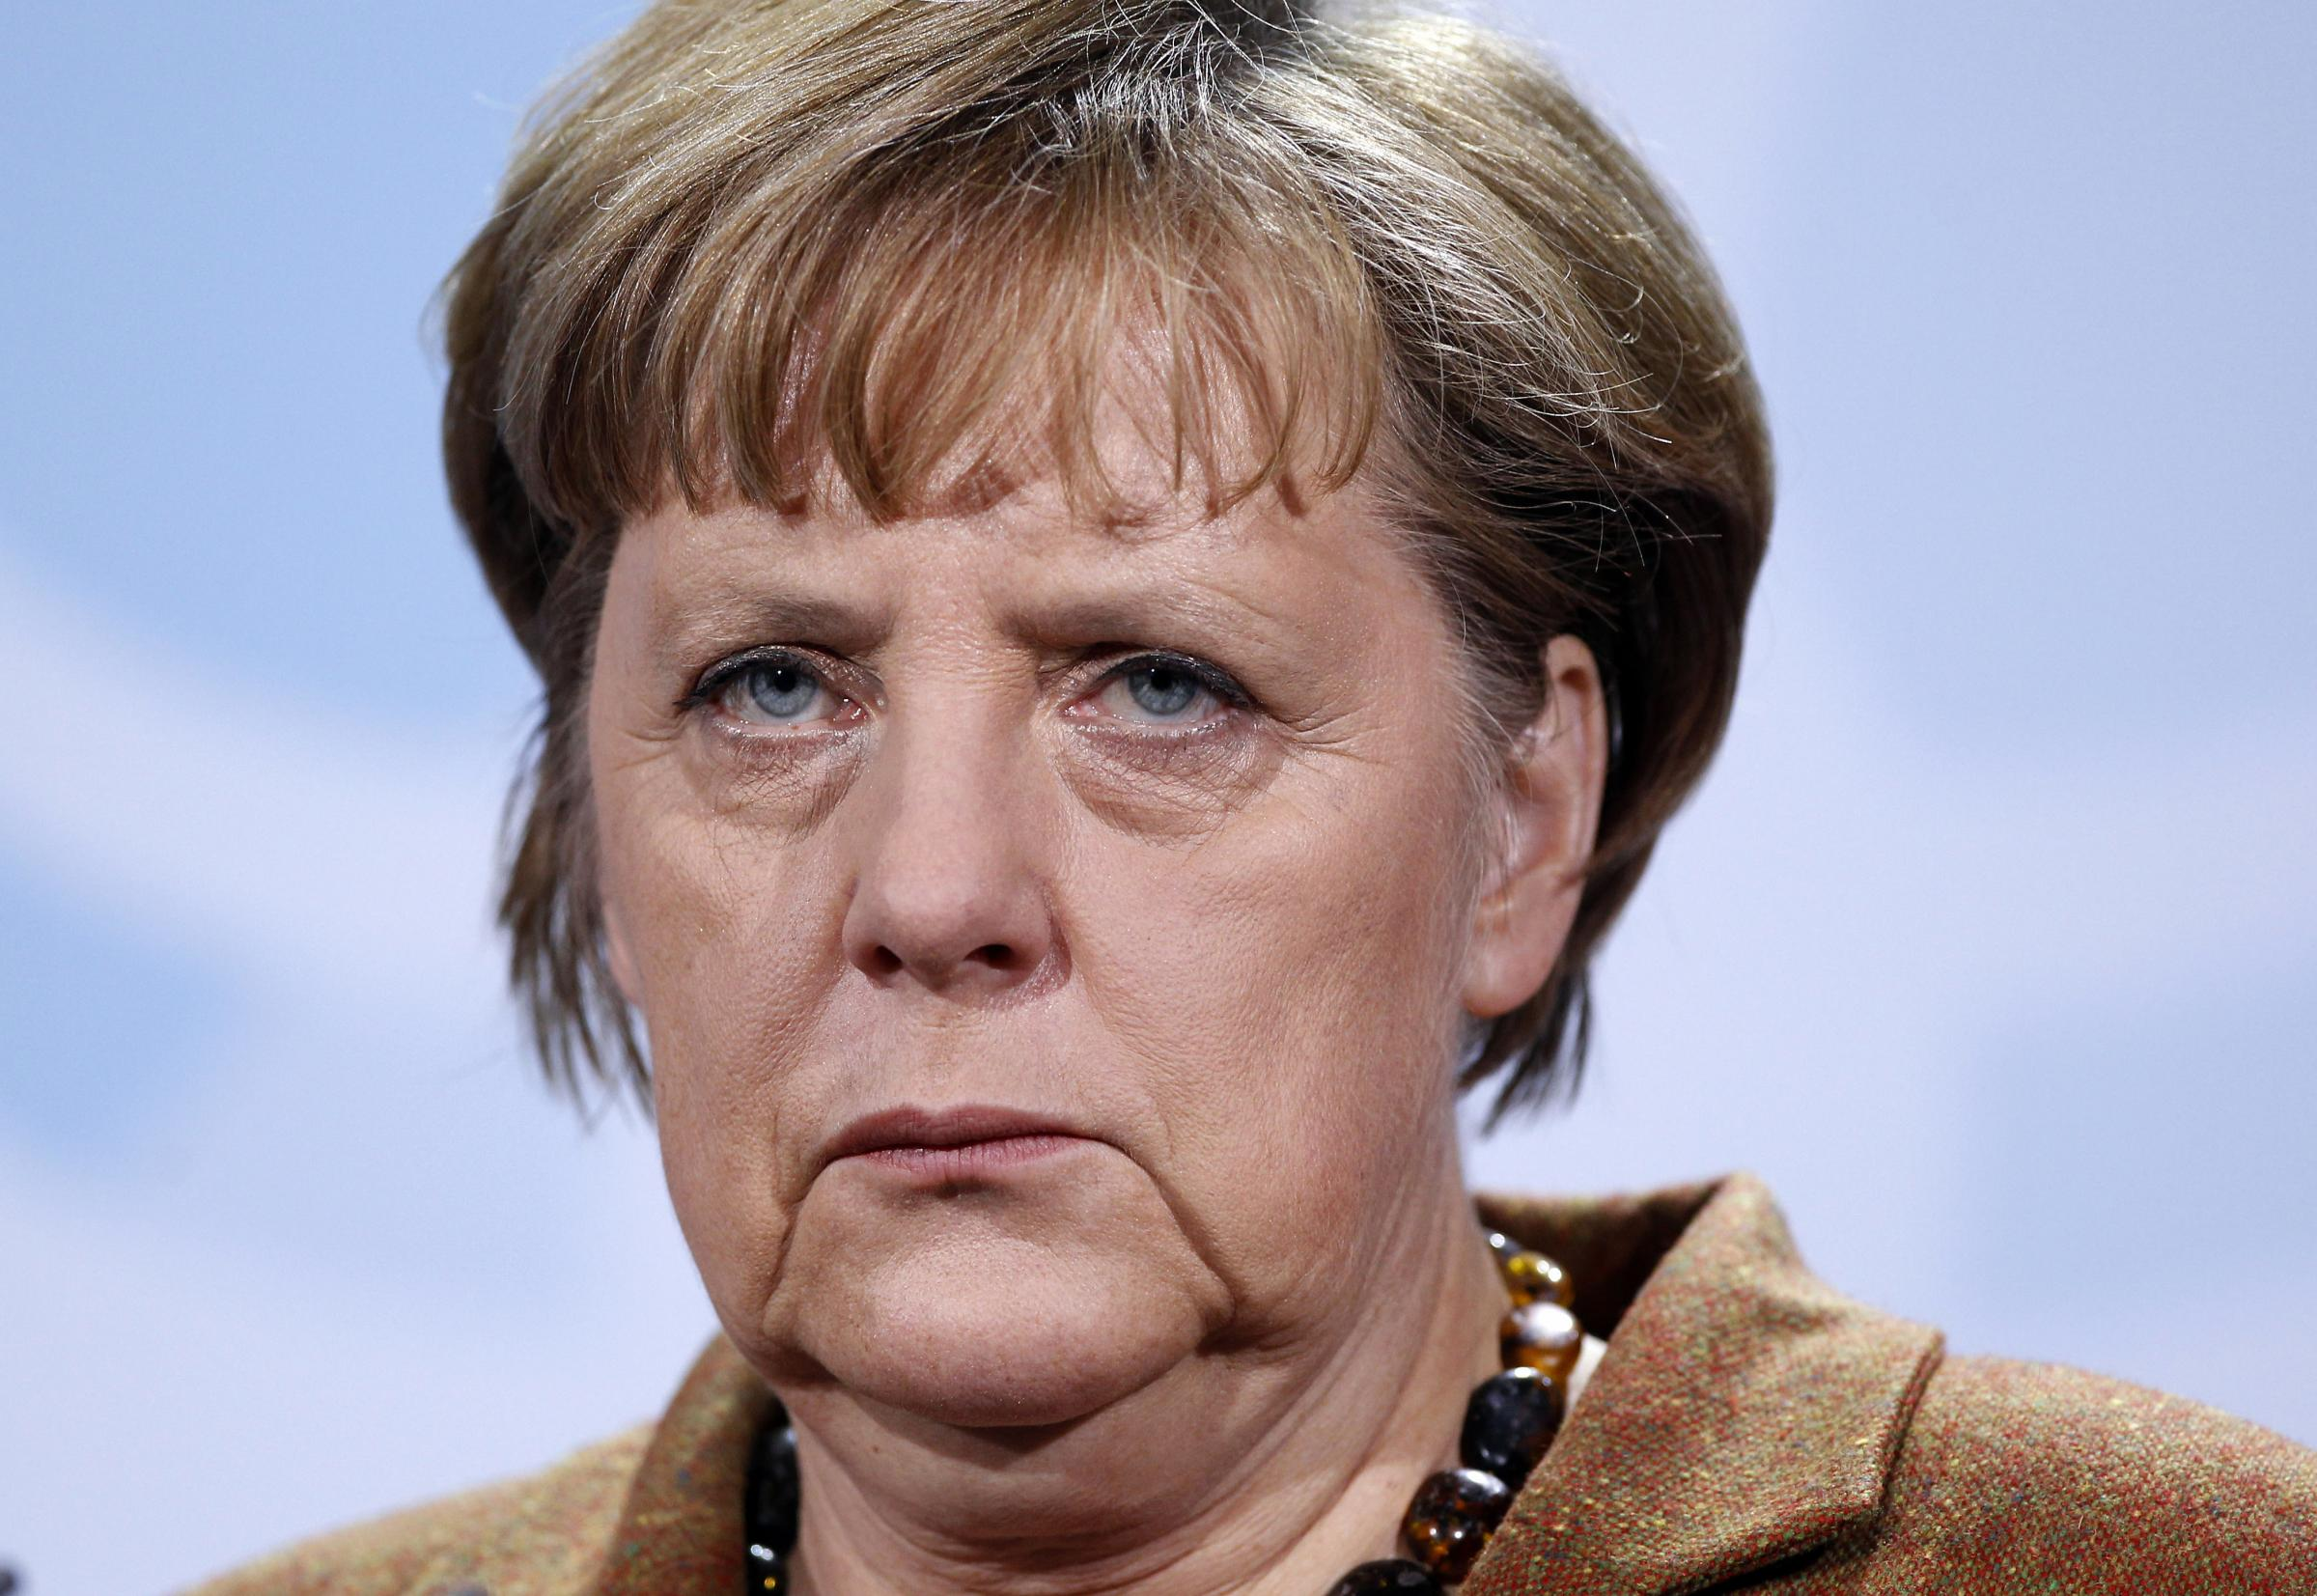 http://www.labottegadelbarbieri.org/wp-content/uploads/2015/07/merkel-rating-sp-downgrading-jpg-crop_display.jpg